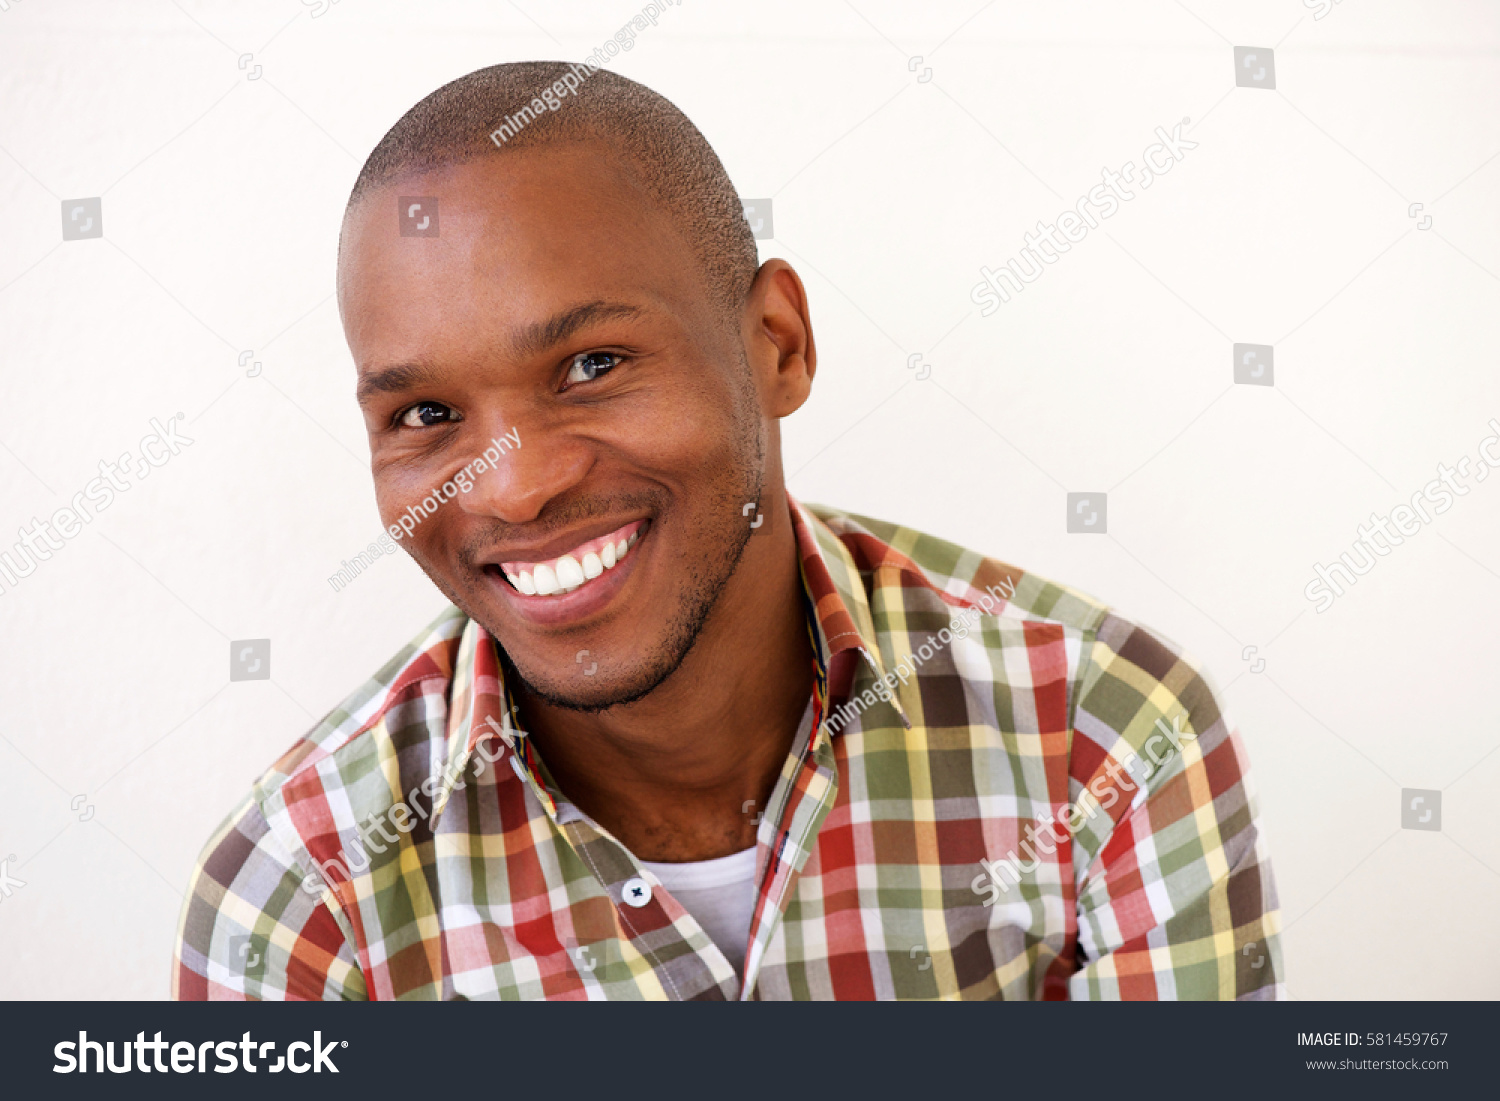 974df57fd06 Close up portrait of cheerful young black man smiling against white  background